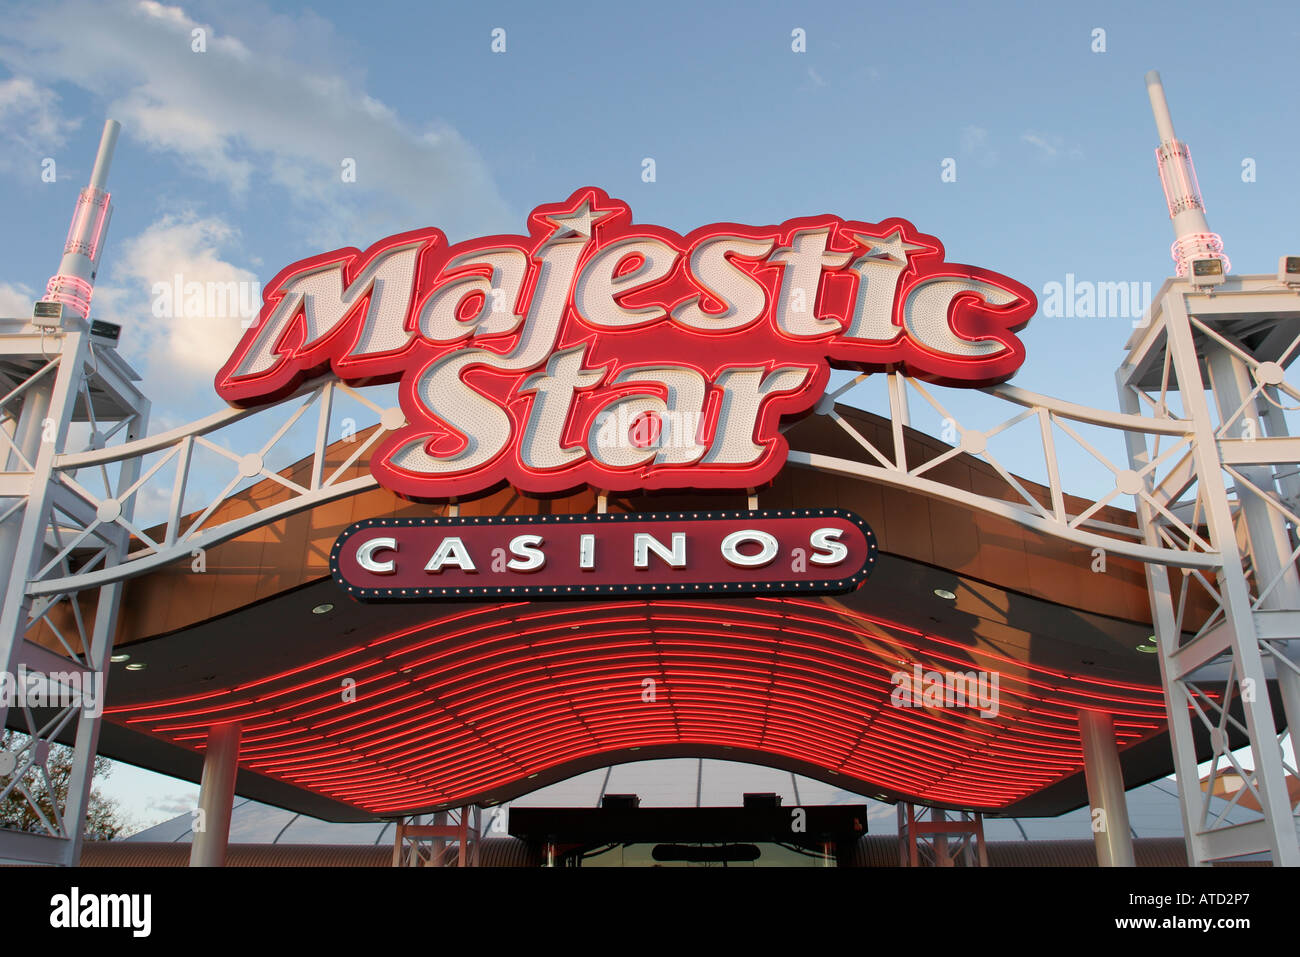 news vancouver canadian casino layoffs